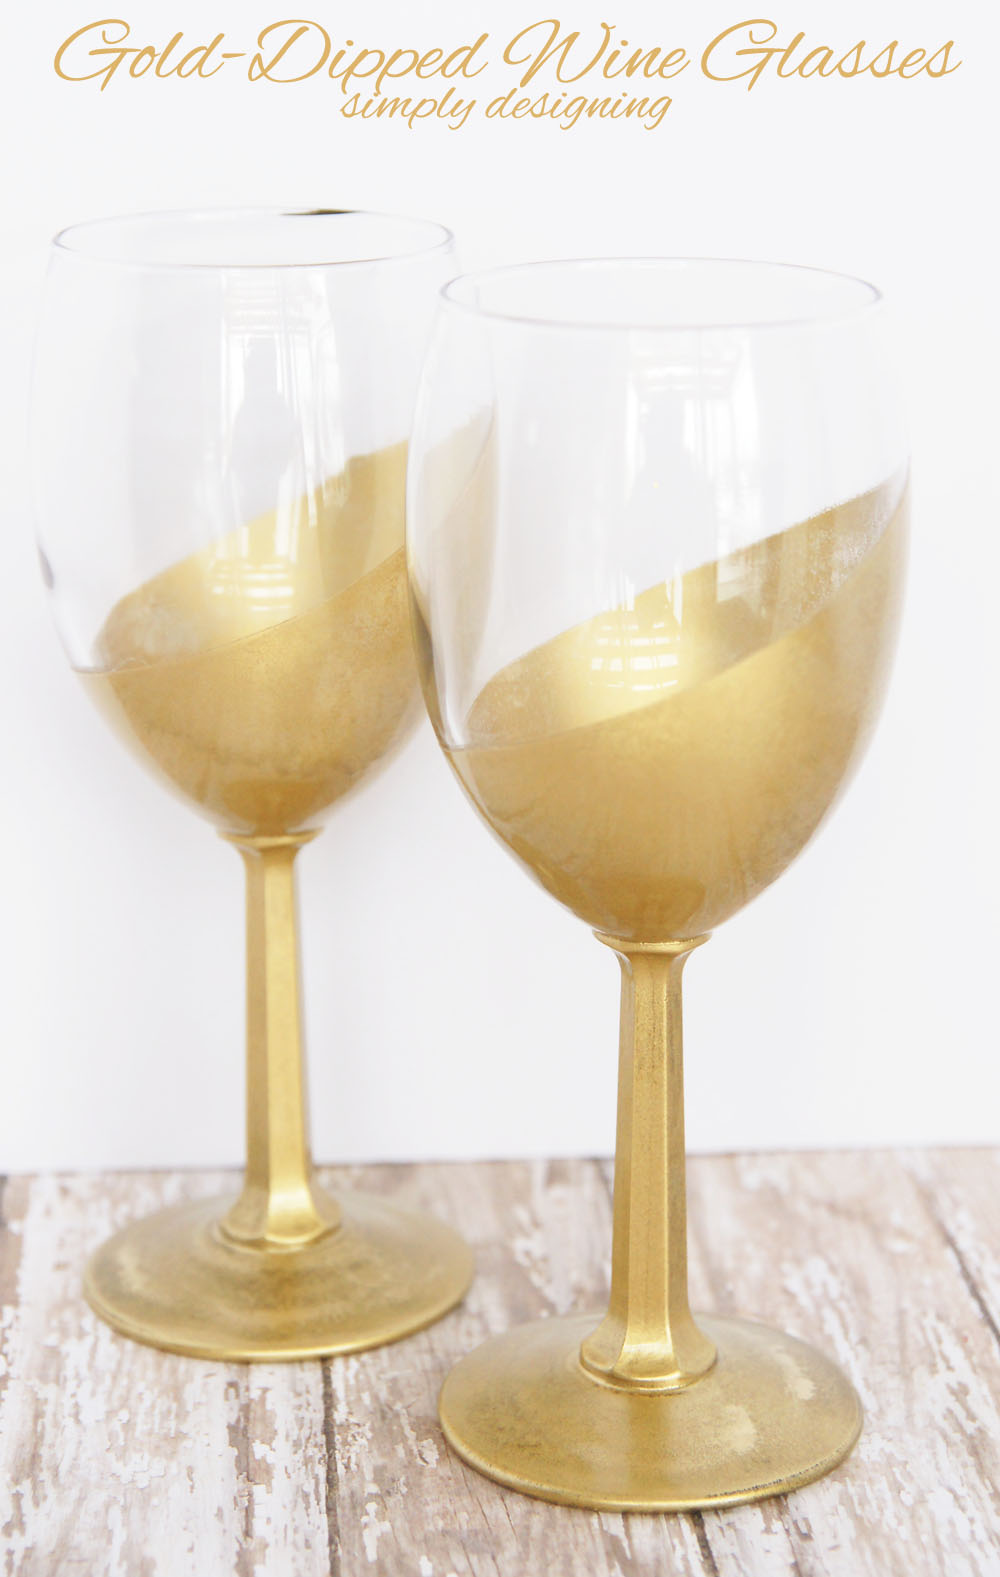 Christmas Wine Glasses At Mataland